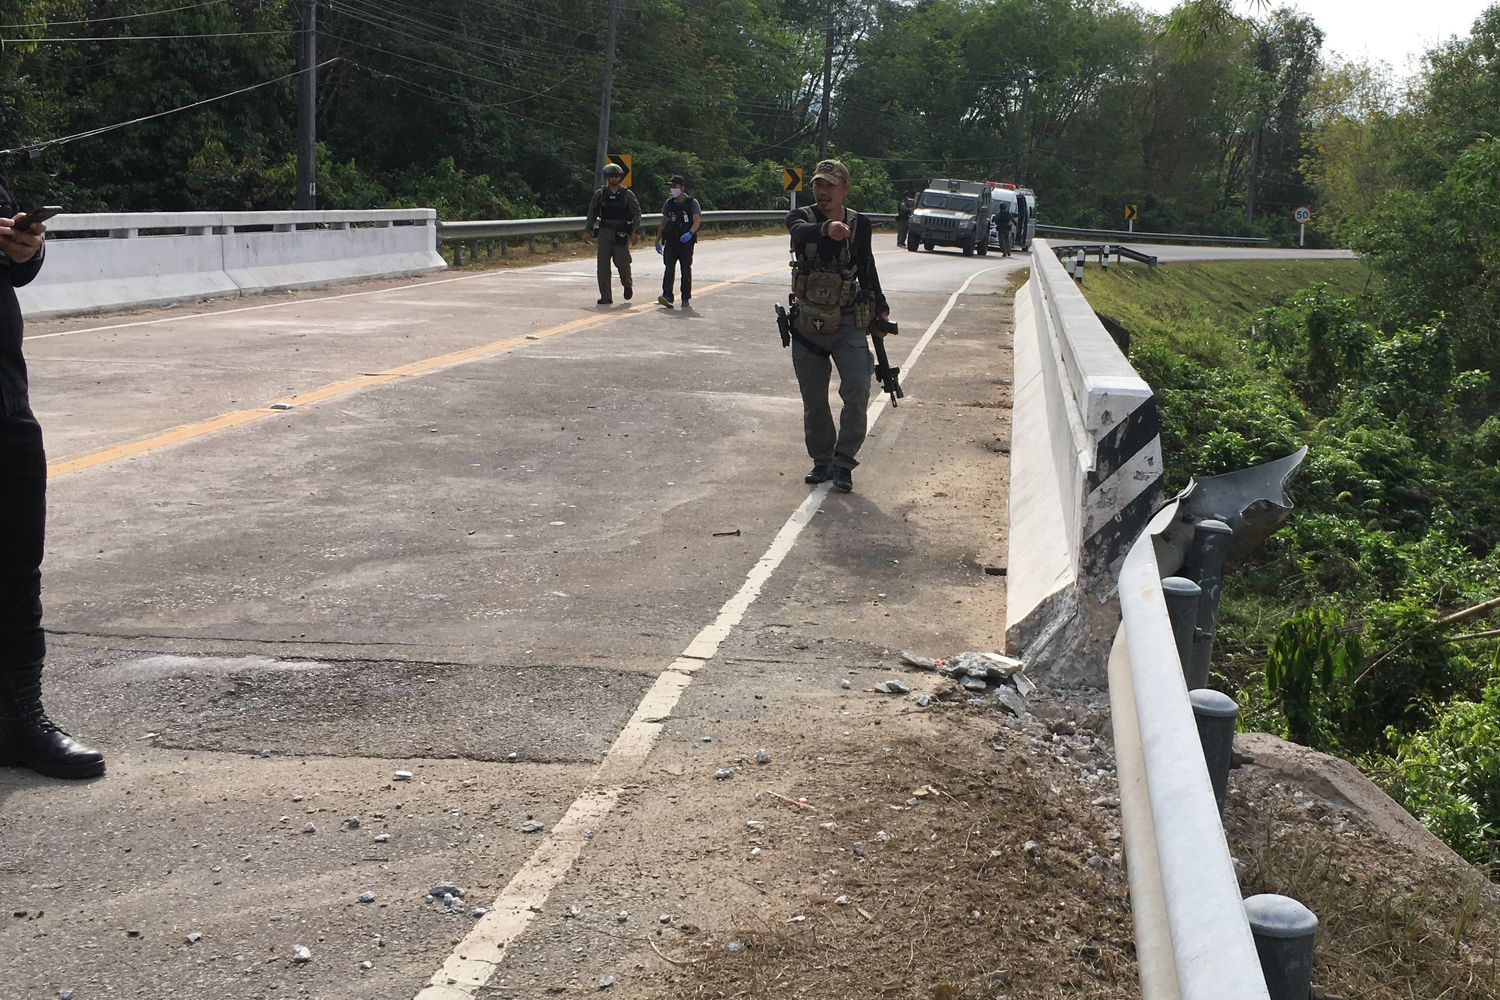 Police and explosive ordnance disposal officials check the bombing scene near a bridge in Rangae district, Narathiwat province on Saturday. (Photo by Abdullah Benjakat)